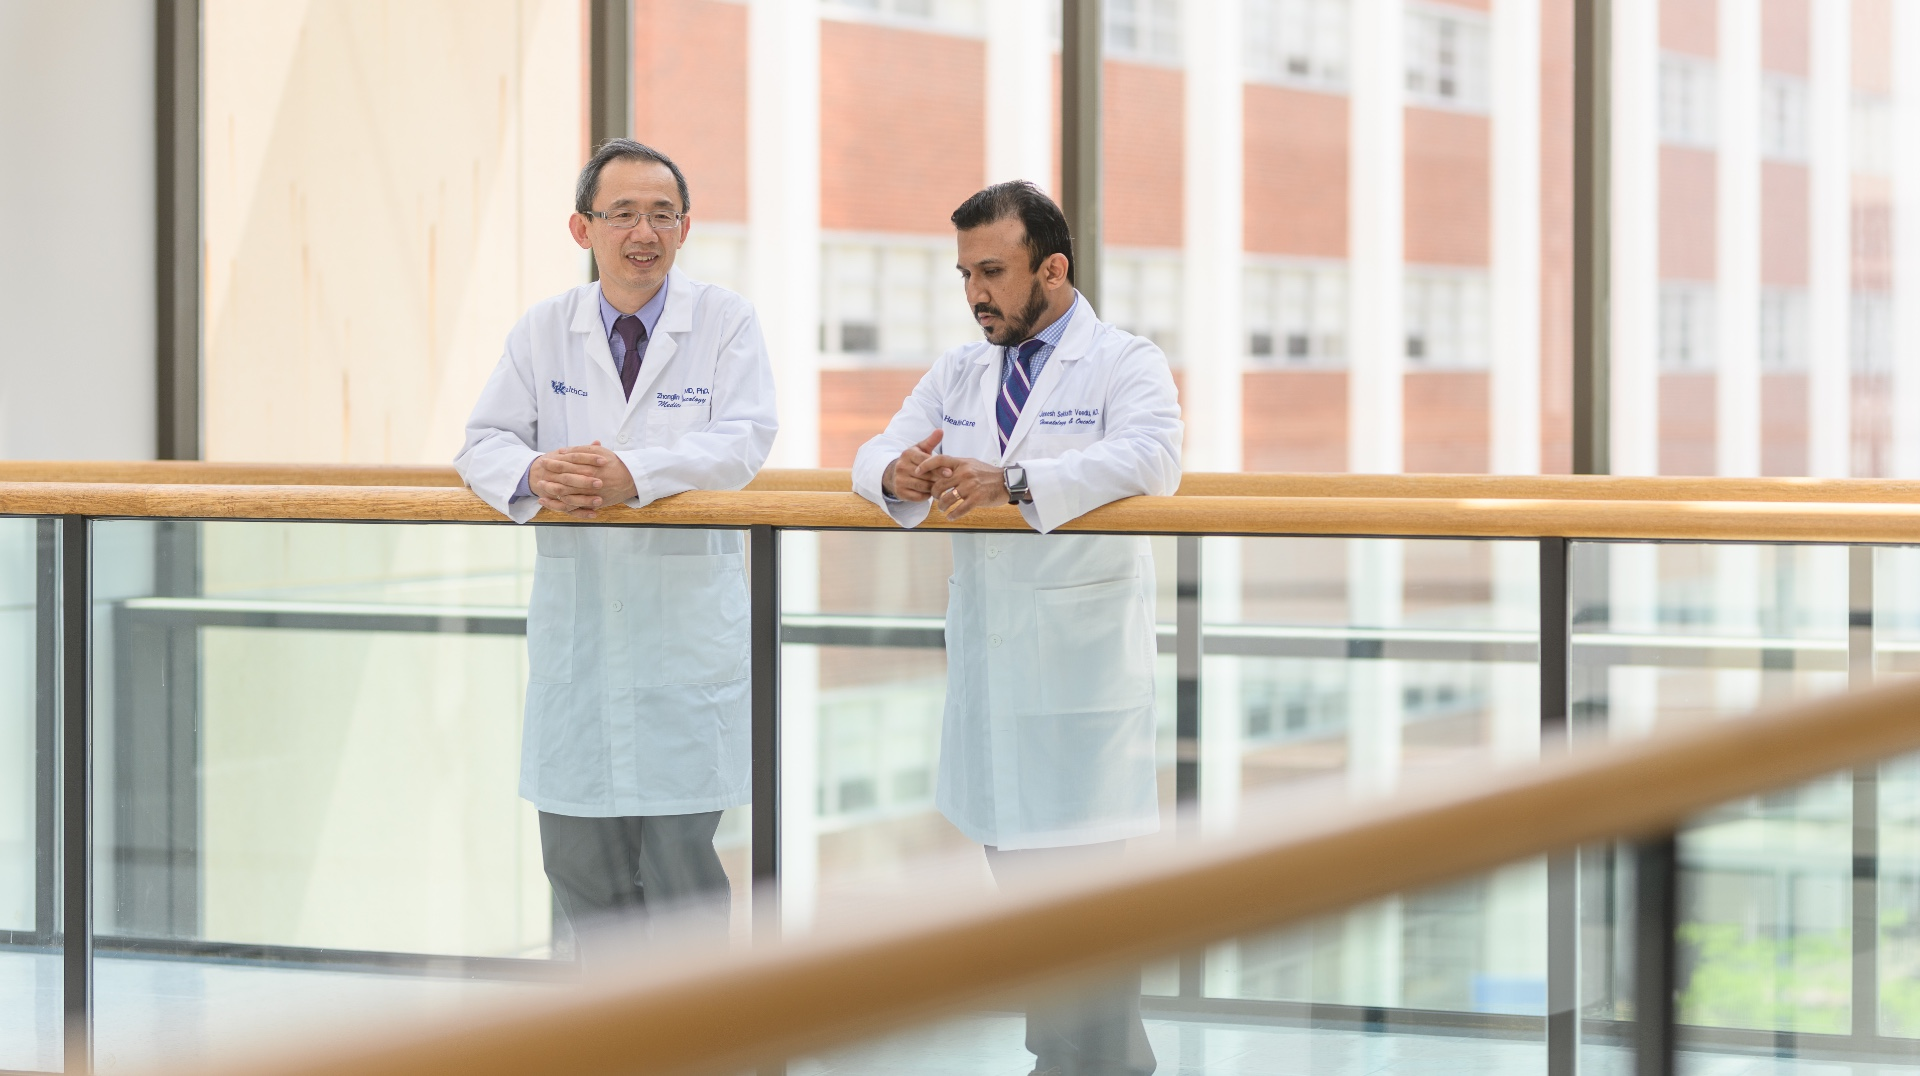 Dr. Zhonglin Hao, an older East Asian man with short greying hair, and Dr. Janeesh Sekkath Veedu, an older South Asian man with black hair, talk as they stand on a walkway in front of large glass windows. They are both wearing white lab coats with blue button-up shirts underneath. Dr. Hao is wearing glasses and a maroon tie, while Dr. Veedu is wearing a blue and white striped tie.